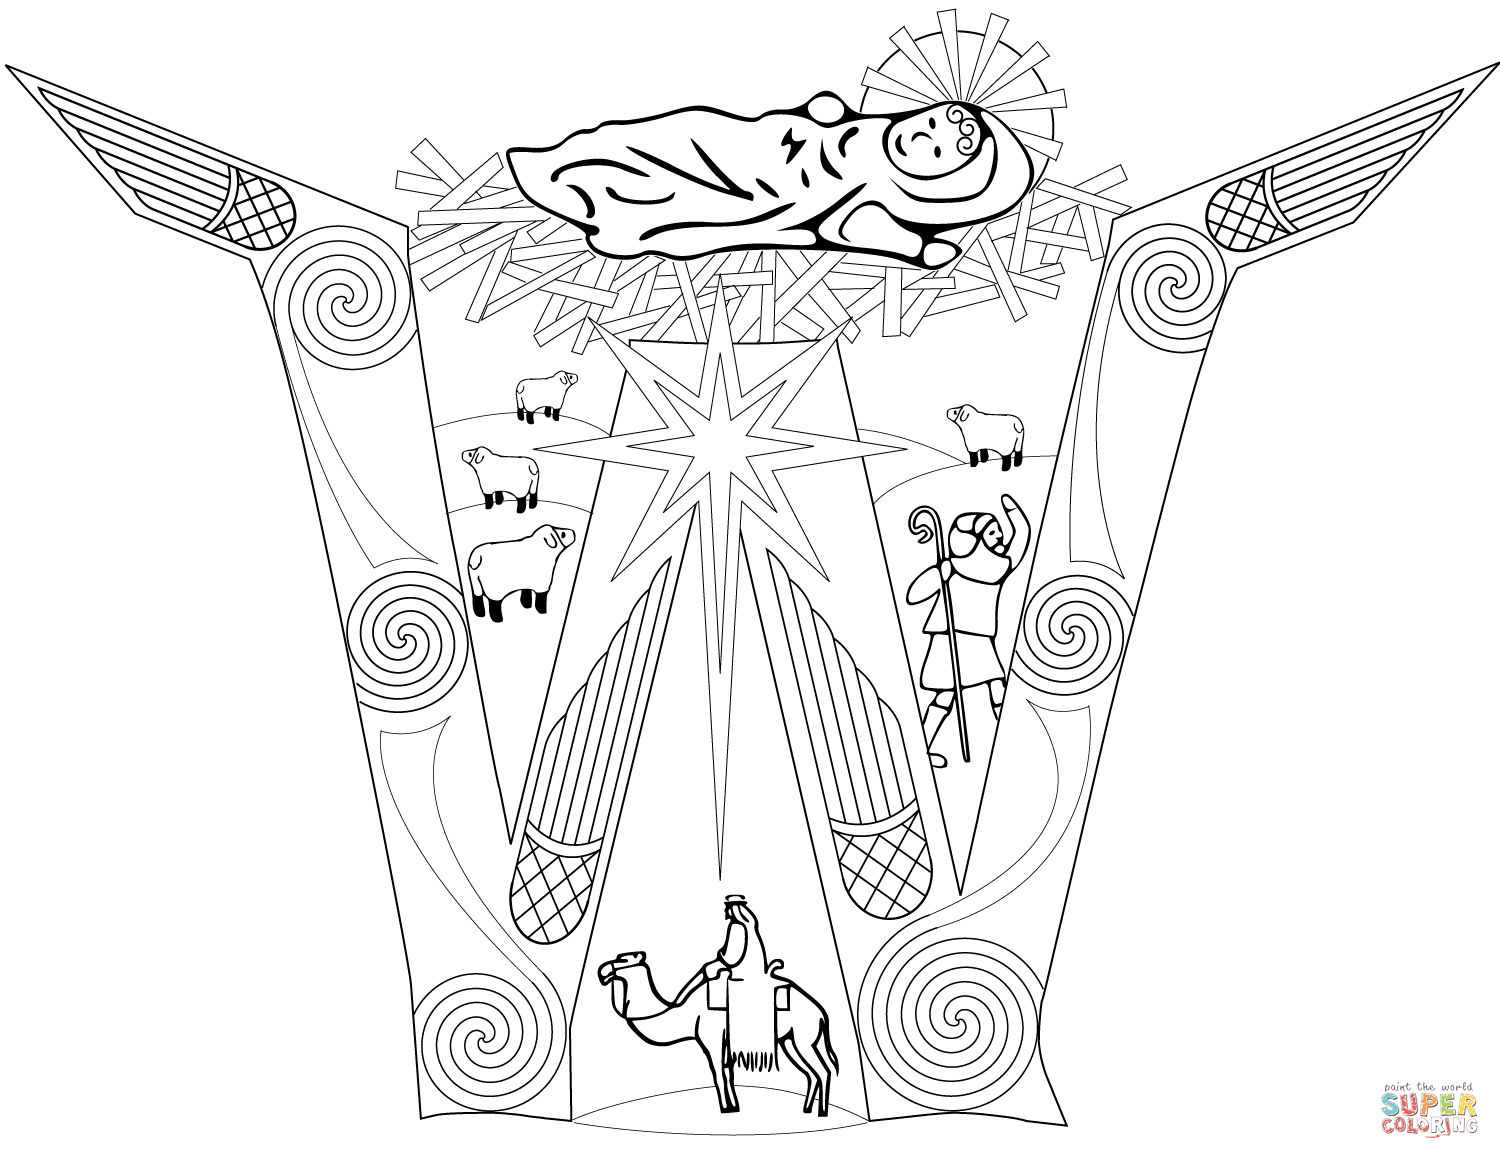 Christmas Nativity Scene Coloring Page | Free Printable Coloring Pages - Printable Nativity Puzzle